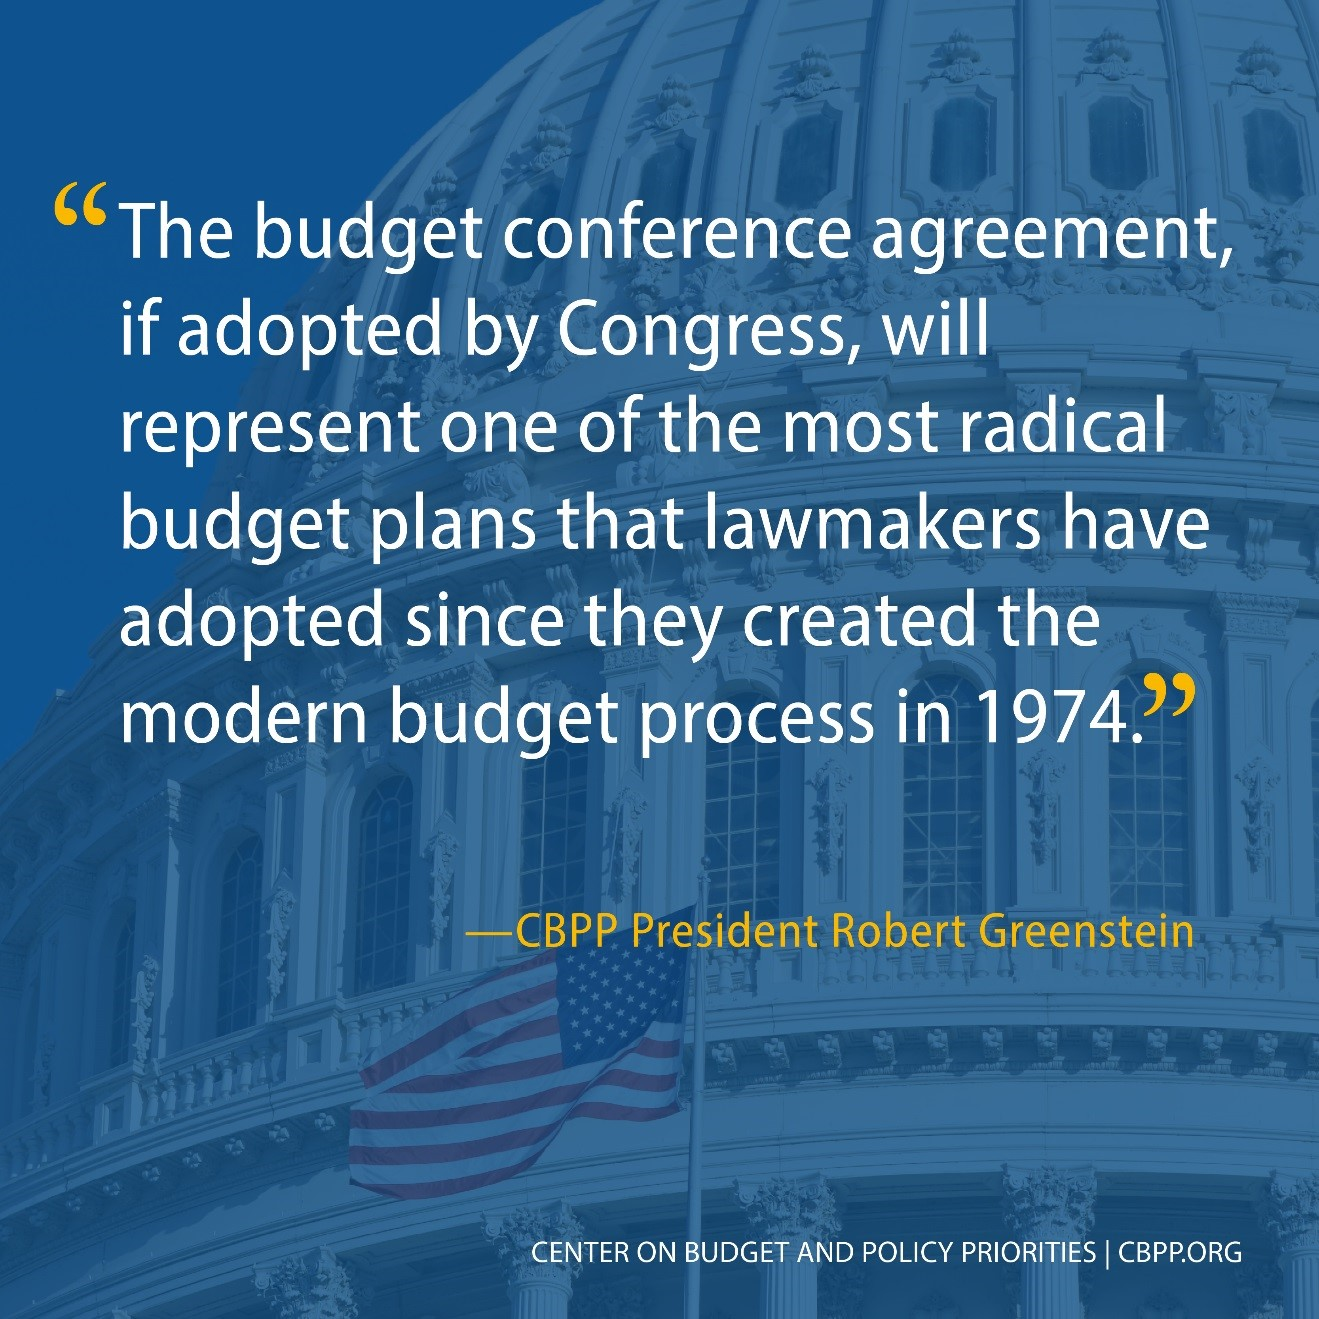 The budget conference agreement, if adopted by Congress...